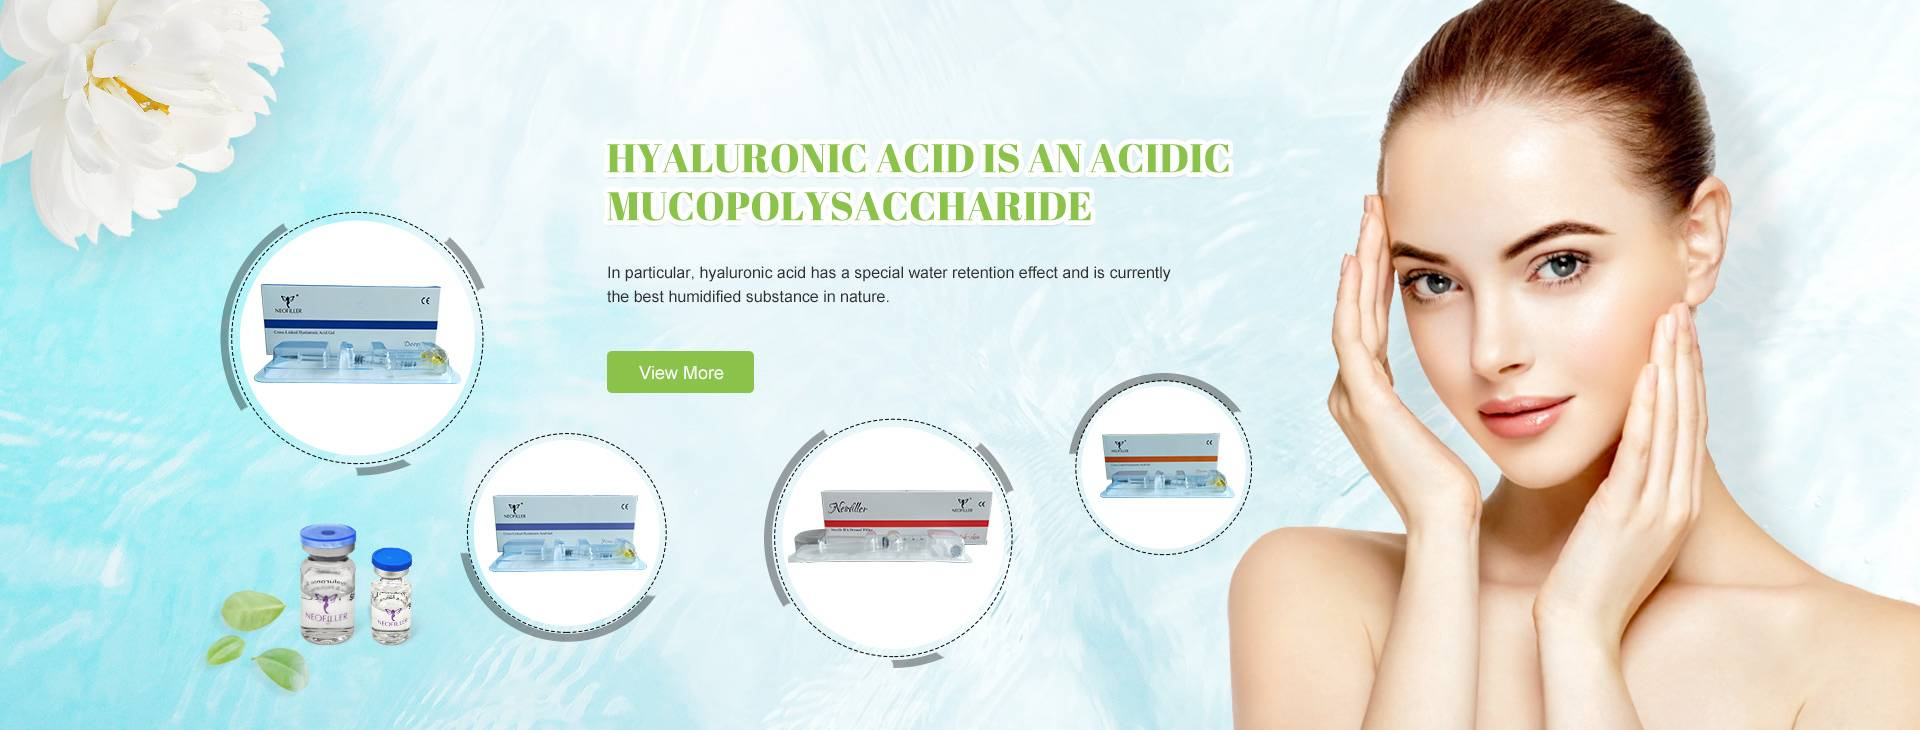 Hyaluronic acid is an acidic mucopolysaccharide